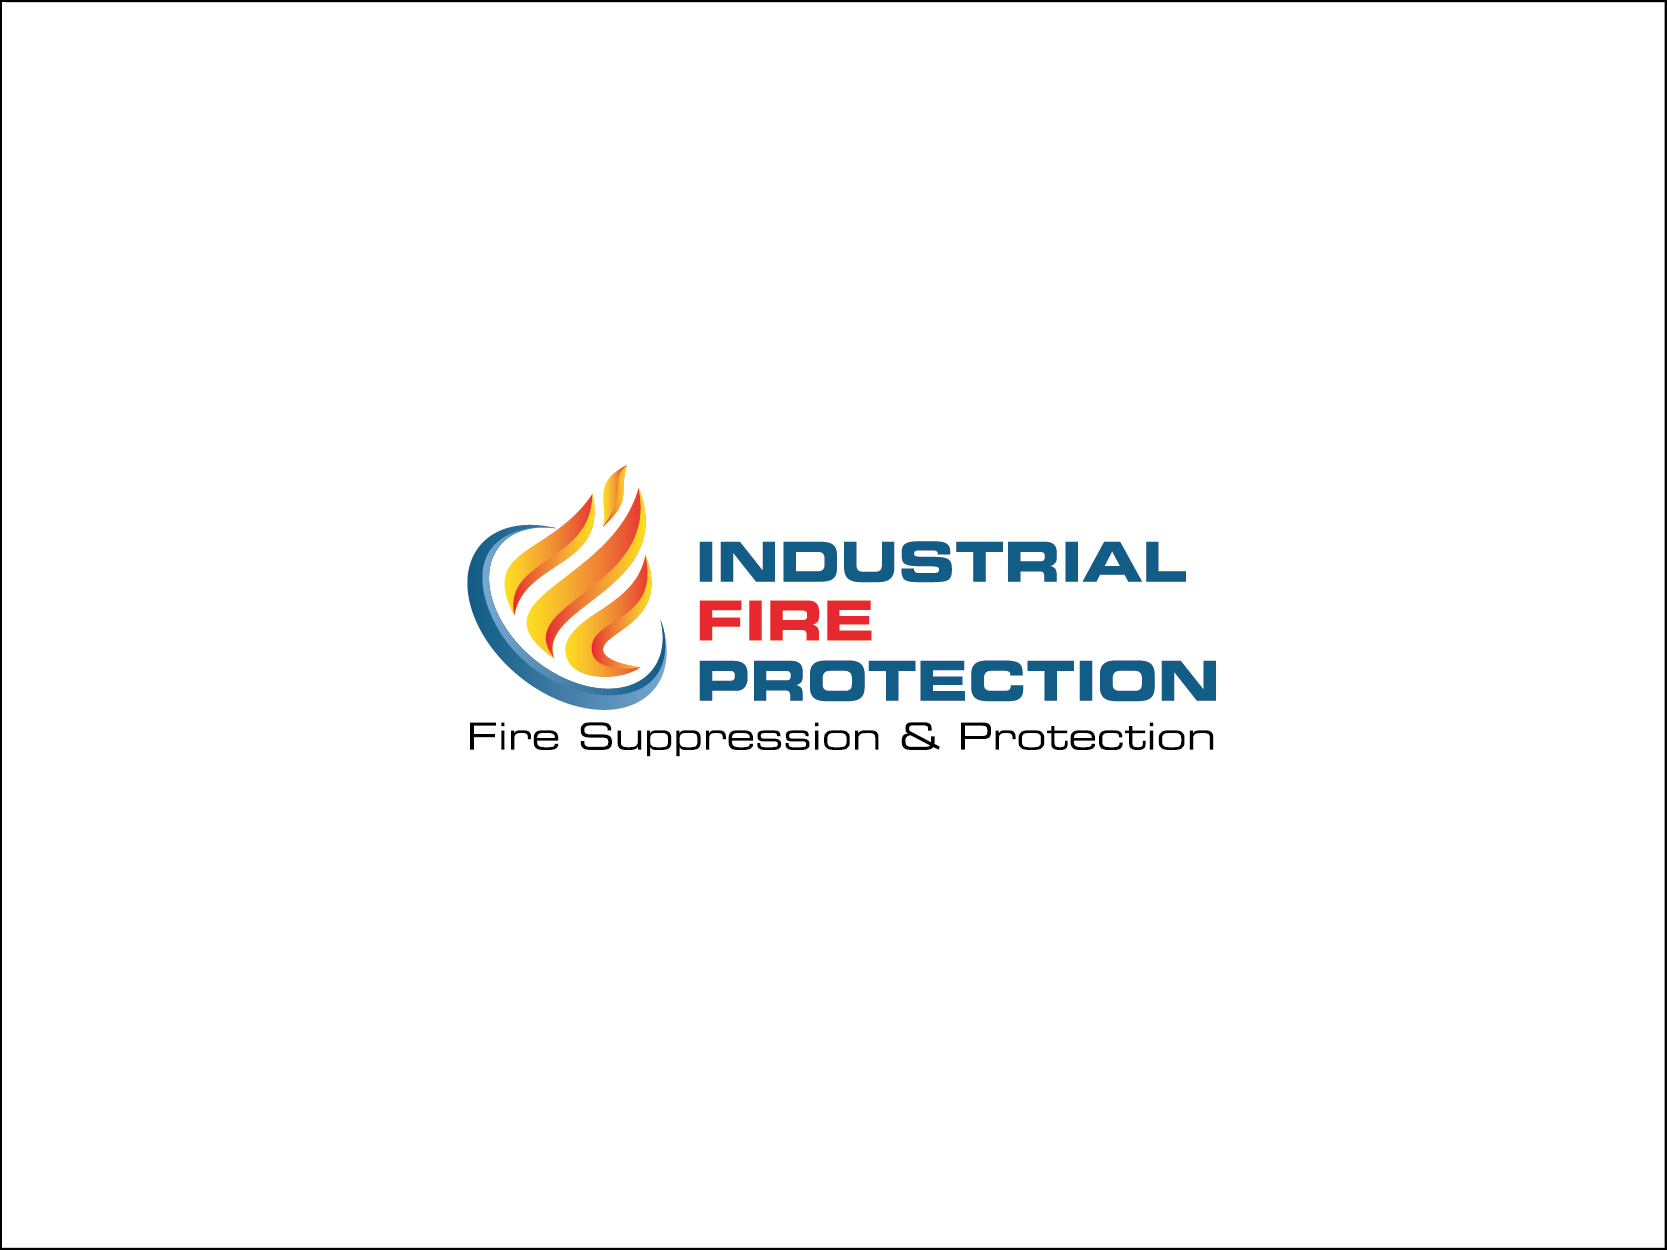 Logo design for national Fire Suppression & Protection services